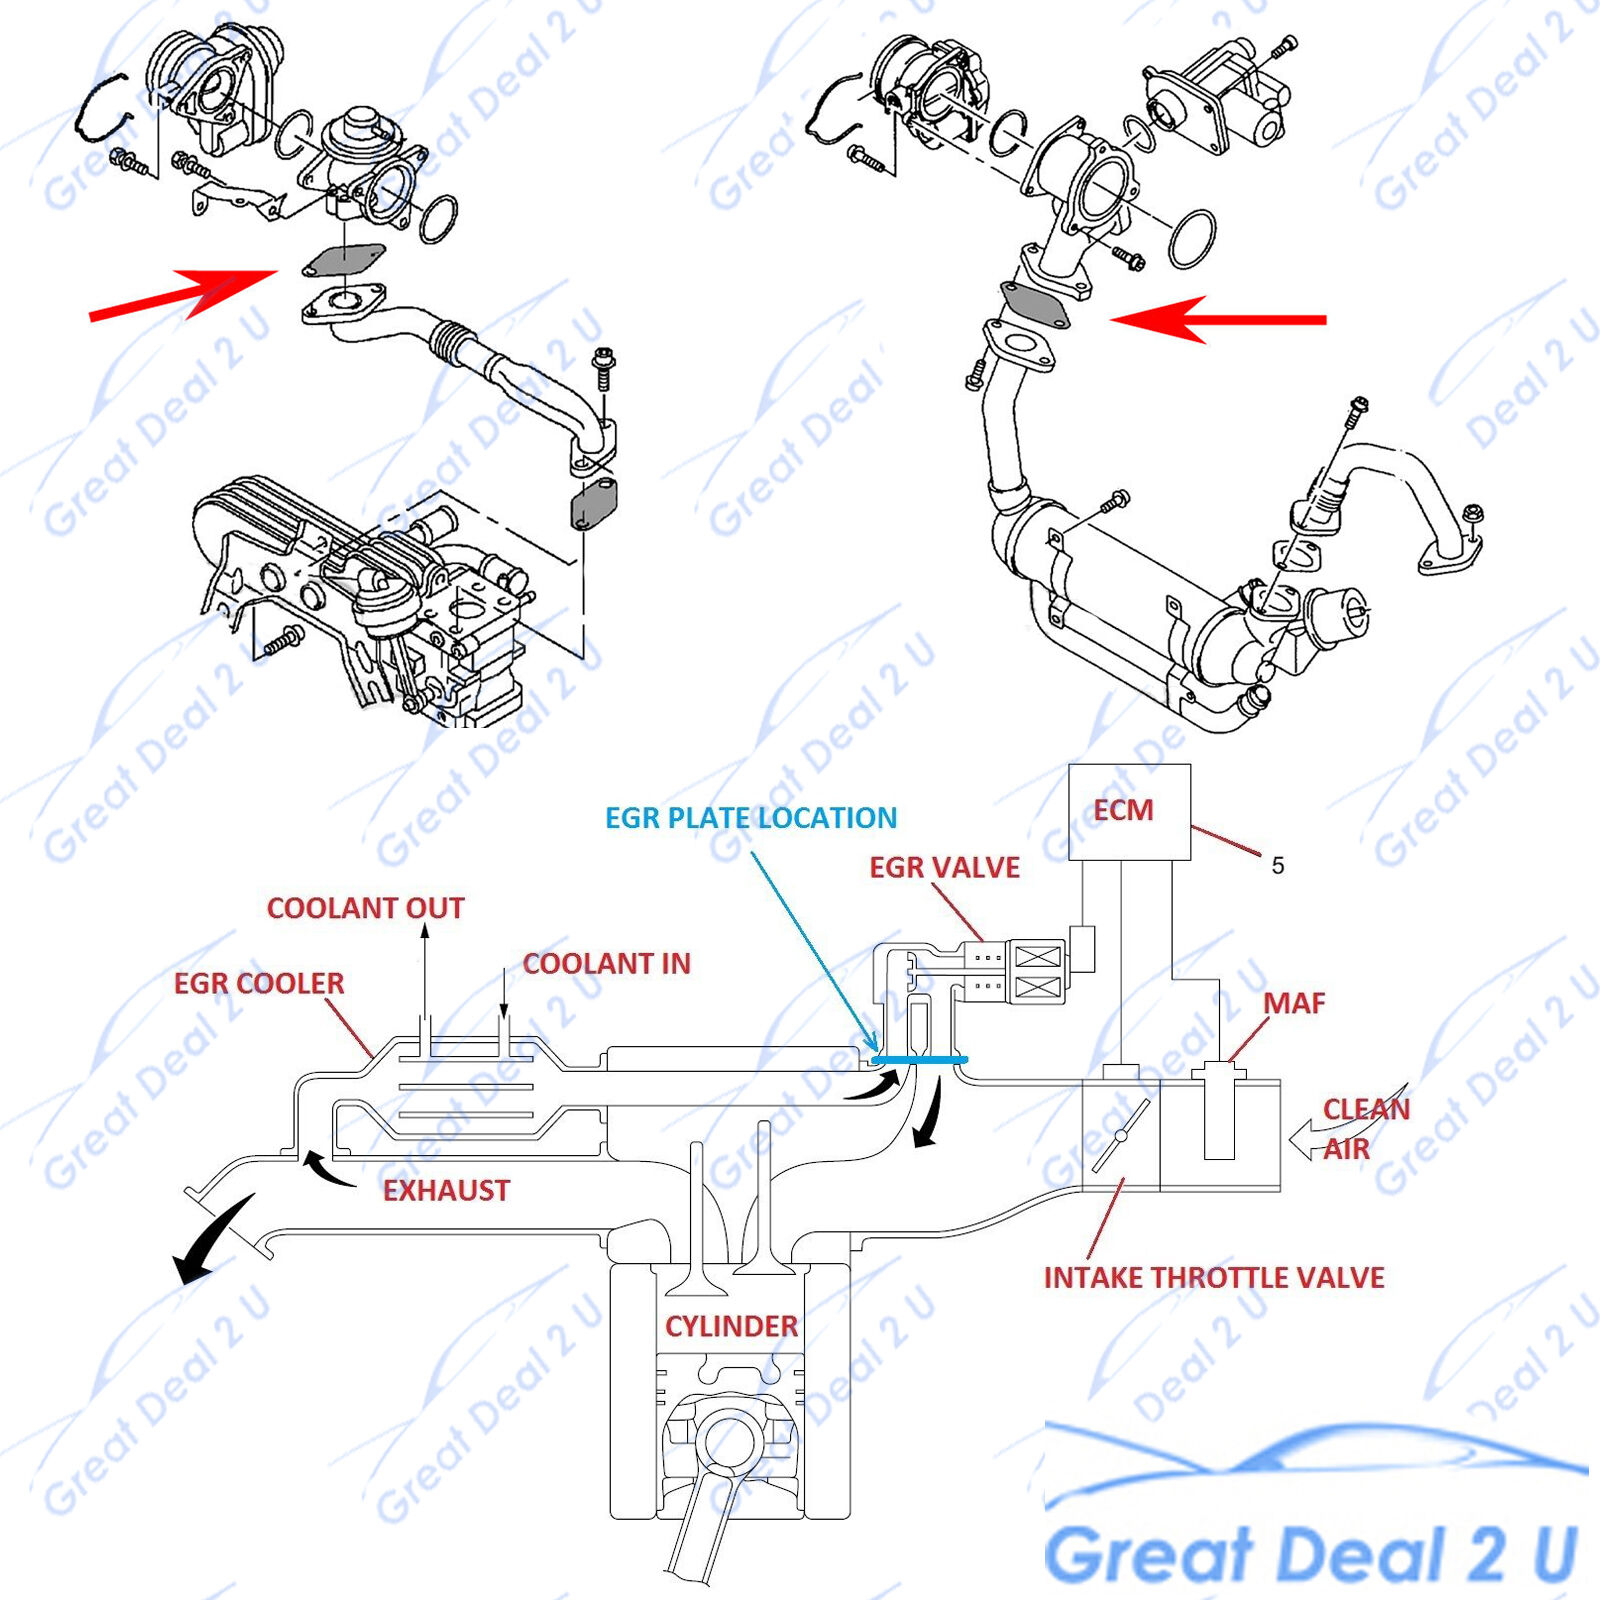 Arb Switch Schematic Free Wiring Diagram For You Rocker Egr Blanking Plate Fits Ford Ranger Px Pxii Mazda Bt 50 3 Harness